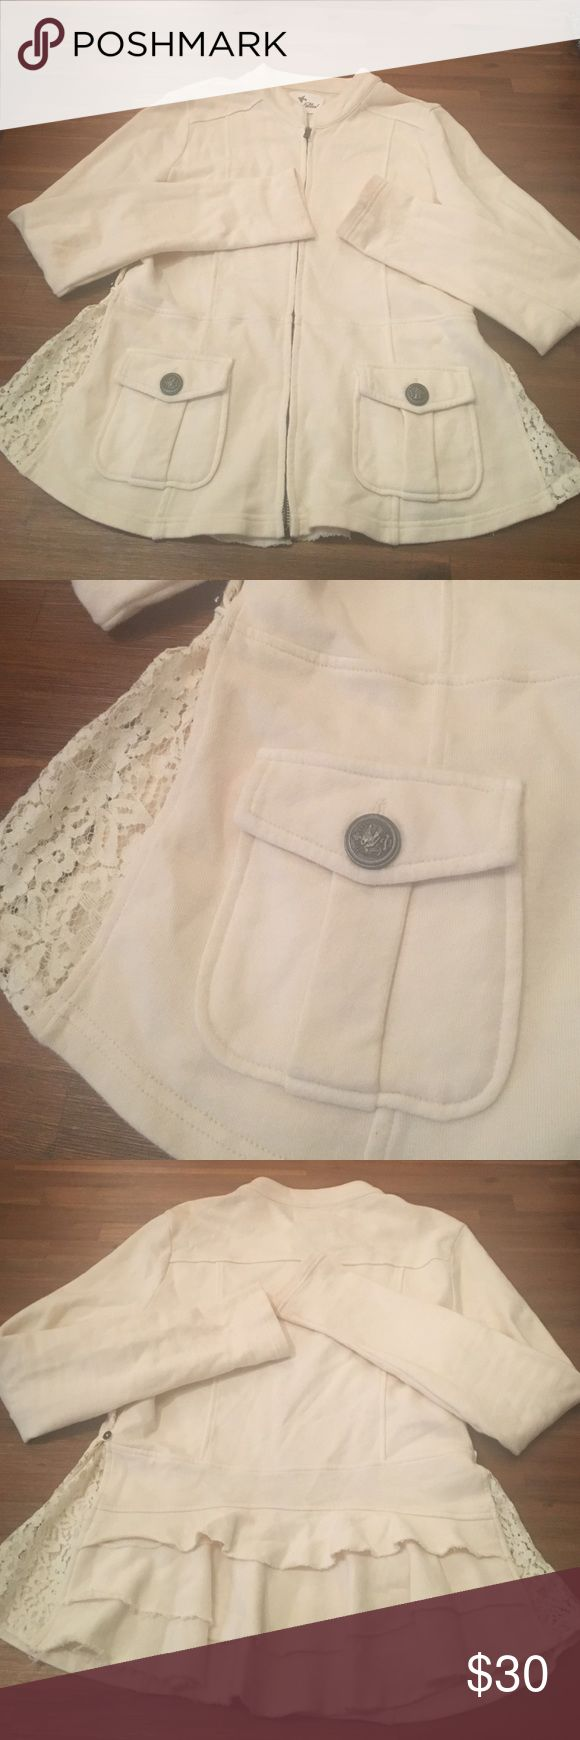 Others Follow Beautiful Cream Zip up Jacket Size medium cream zip up jacket. Beautiful pocket detail on the front. Zip up. Adjustable buttons on the side with lace detail. Peplum detail on the back. 24 inches in length and 16 inches on the bust. No stains or tears. In excellent condition. Smoke free home. 100% cotton. Others Follow Jackets & Coats